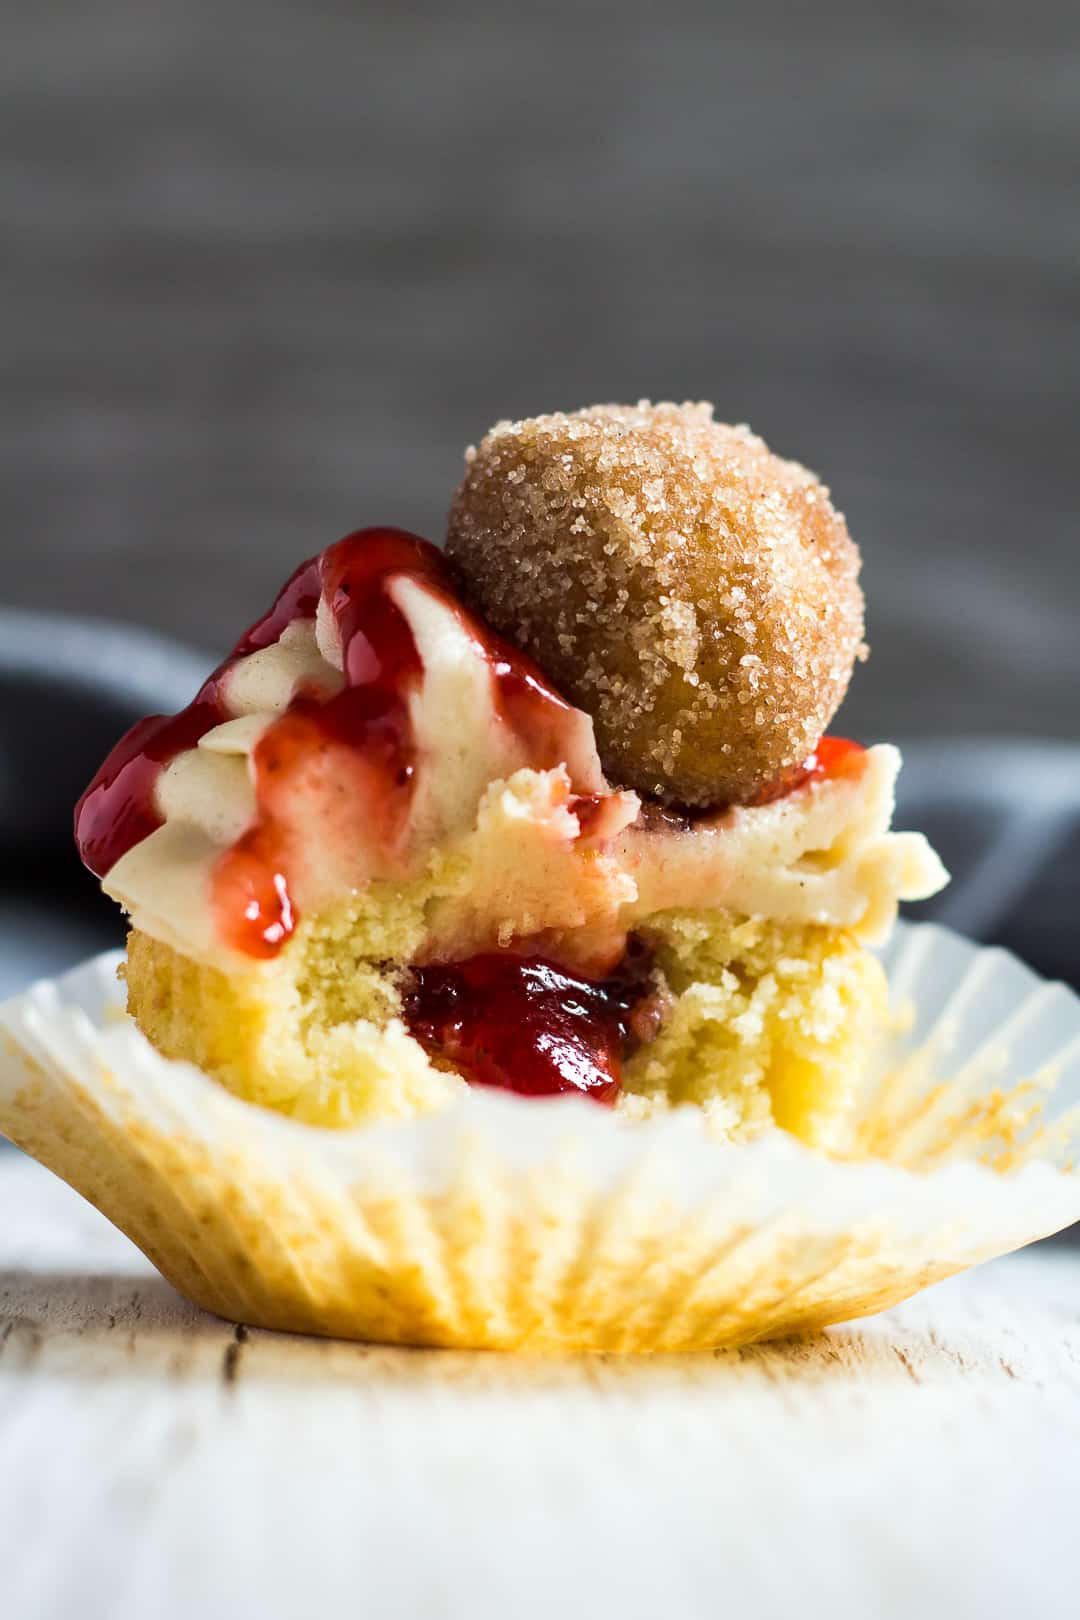 A Jam Doughnut Cupcake cut in half in its wrapped to show jam filling.